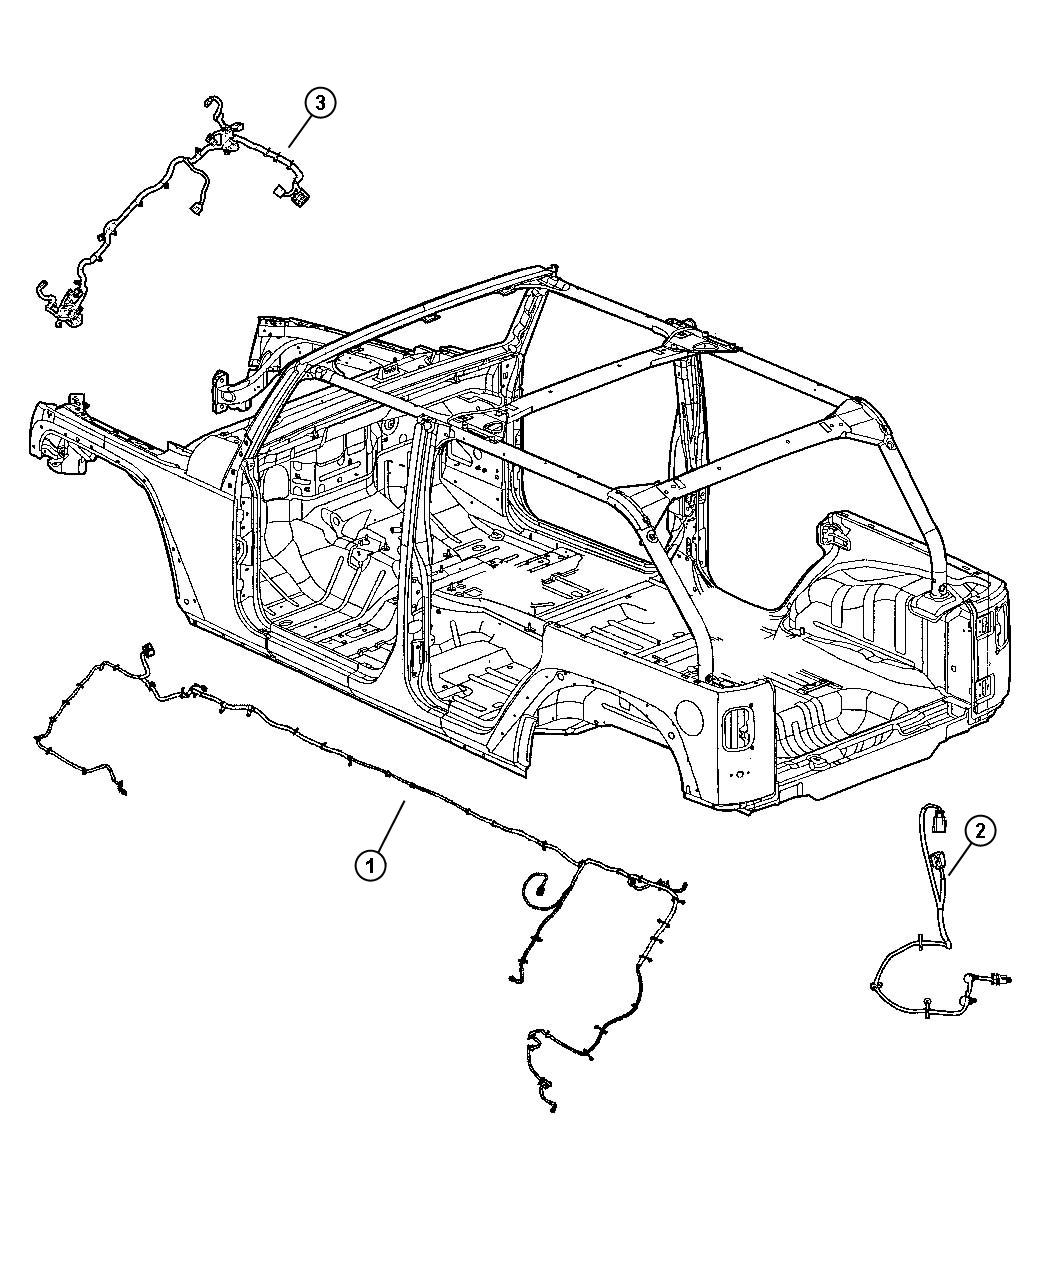 Jeep Wrangler Wiring. Chassis. Export. Dse, front, shg